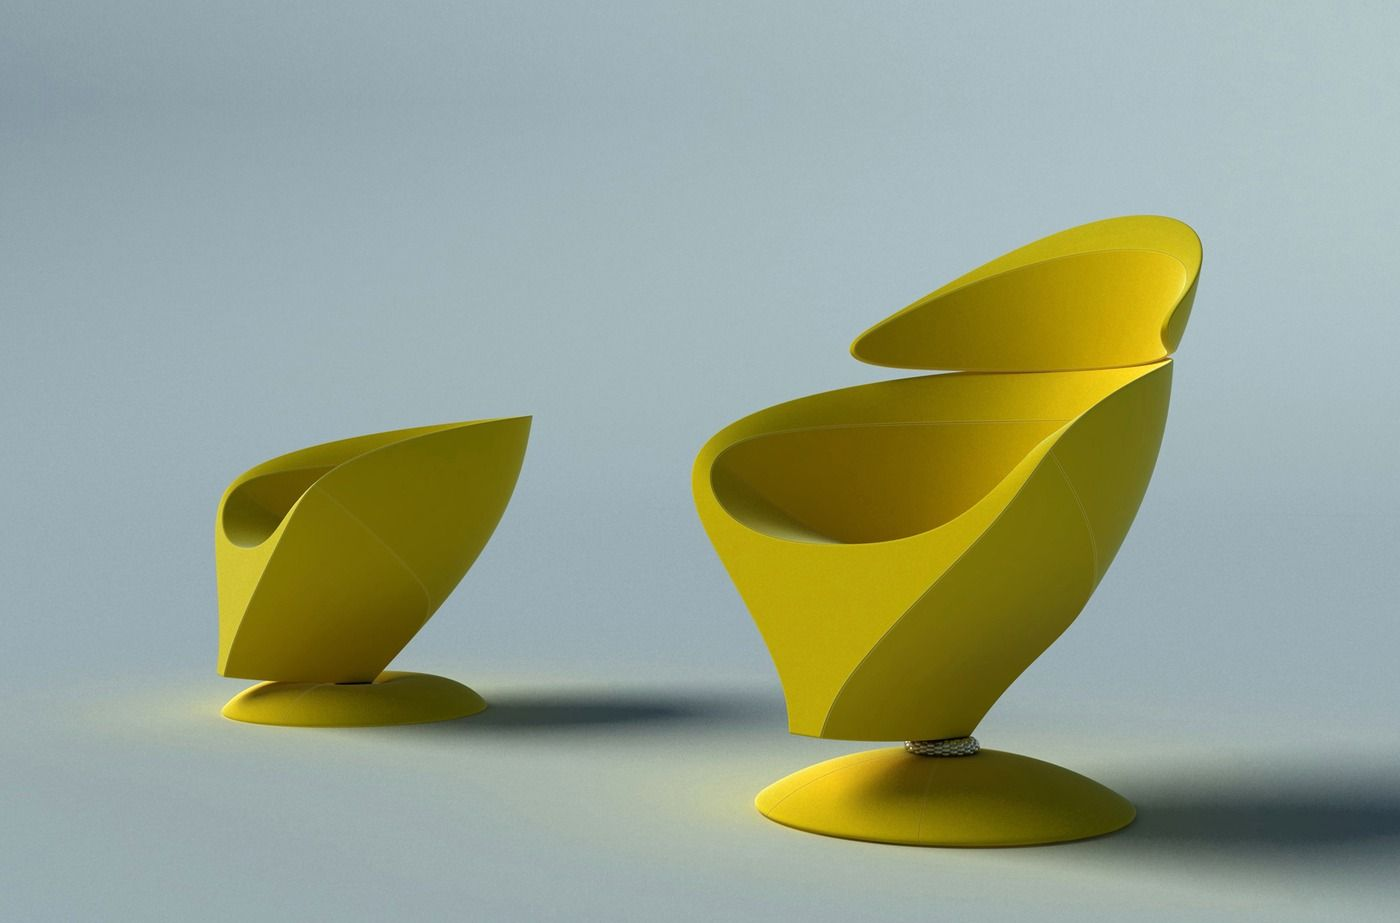 Yuca Easy Chair, By Kirsten Hoppert Germany) U0026 Steffen Kroll Germany).  Sculptural Seating At Its Zenith.